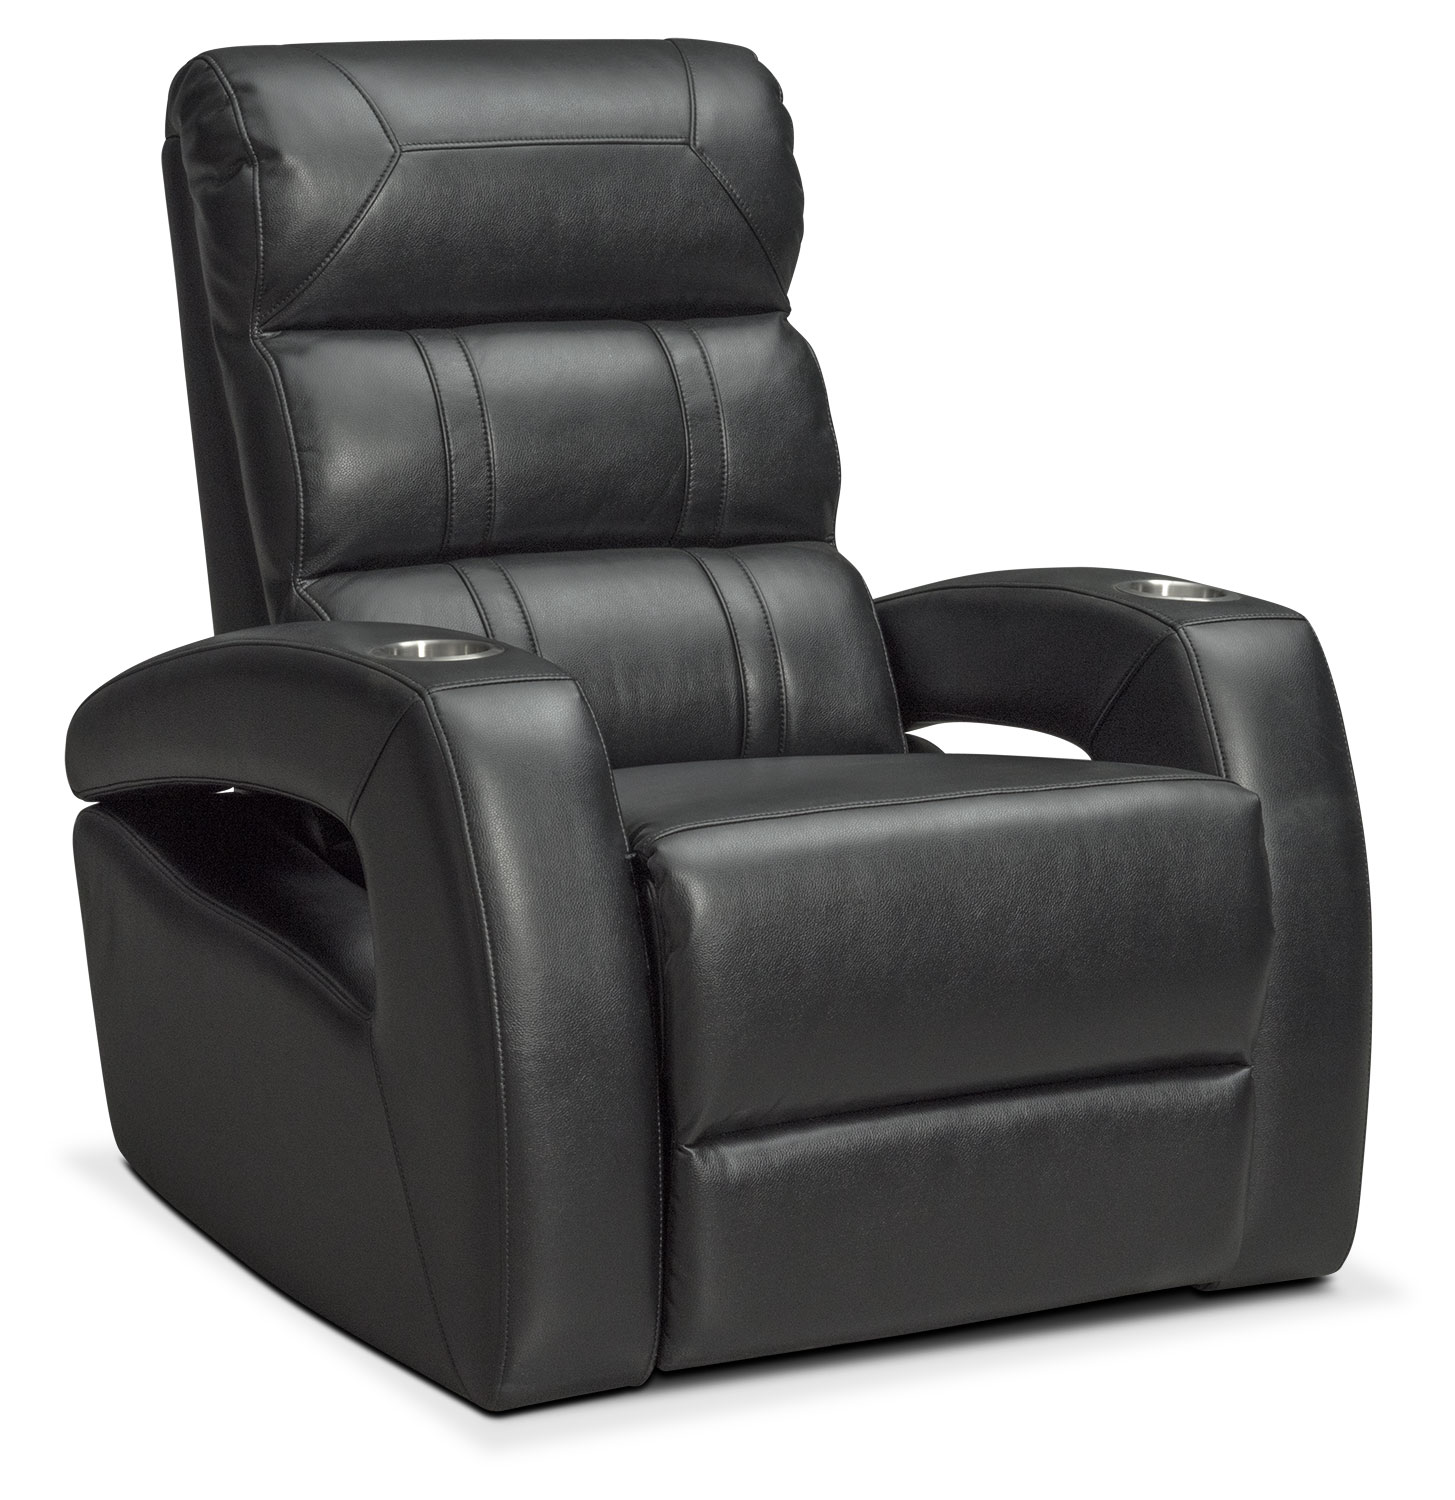 Bravo Power Recliner - Black